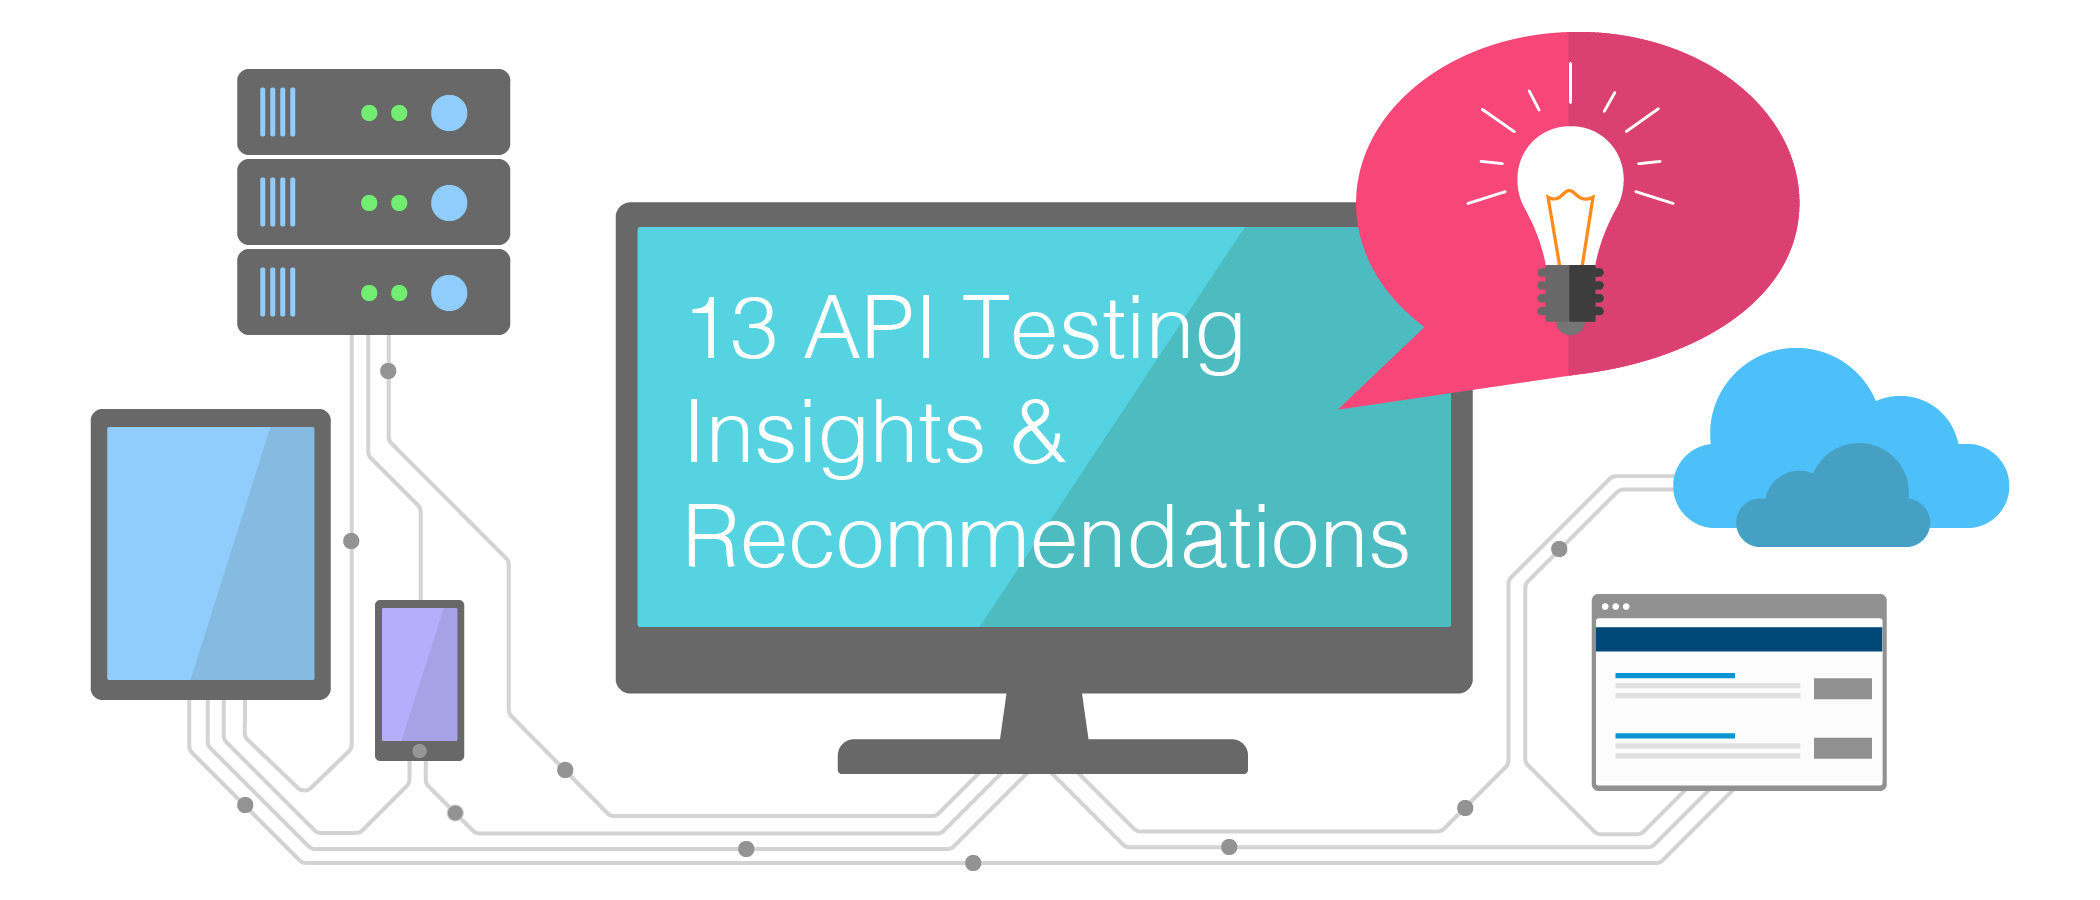 A Micro-Manifesto on API Testing to Inspire and Recharge Your Organization